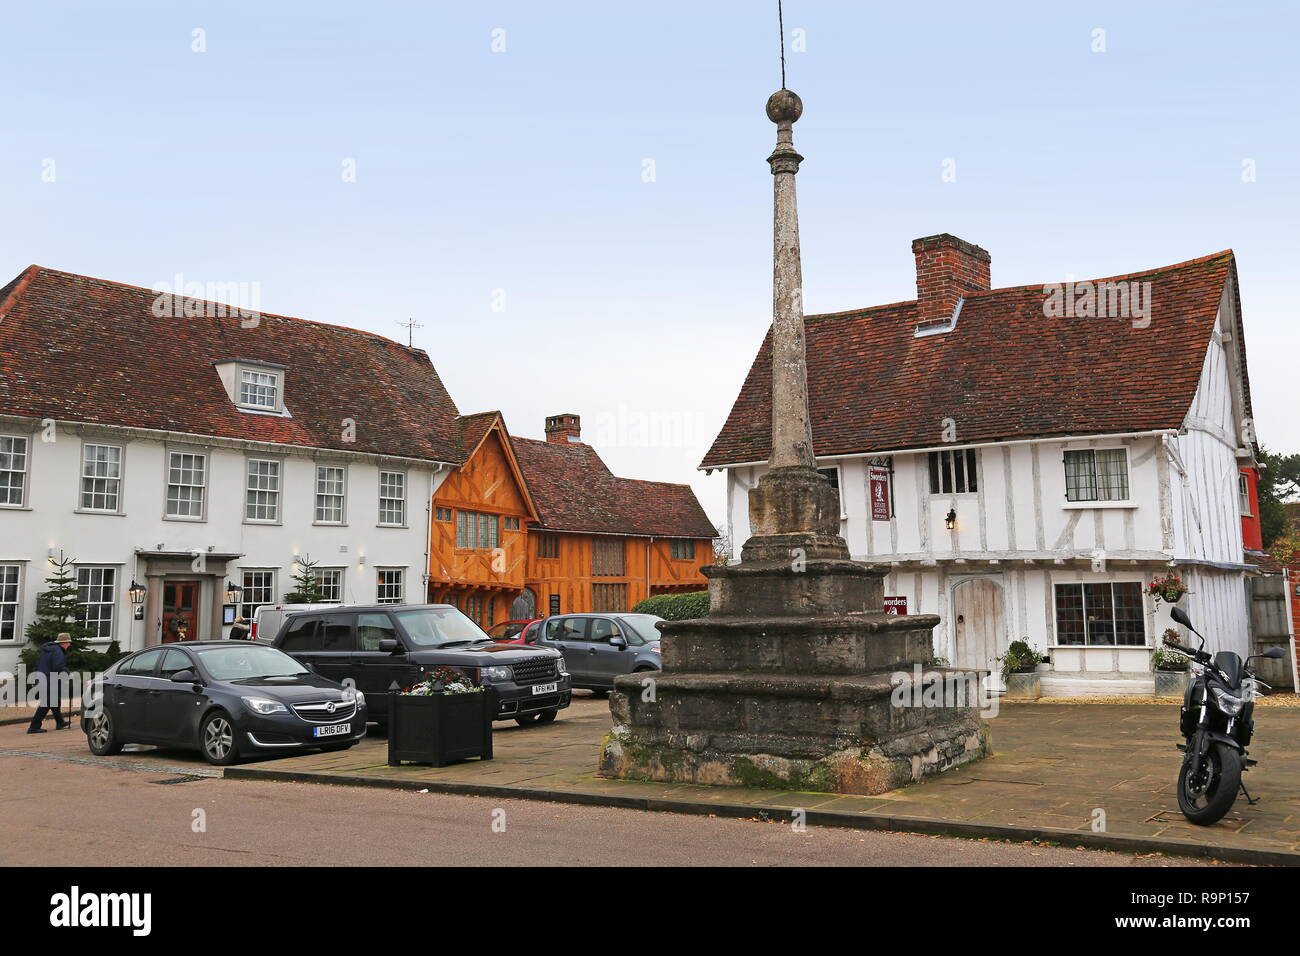 Great House Hotel and Market Cross, Market Place, Lavenham, Babergh district, Suffolk, East Anglia, England, Great Britain, United Kingdom, UK, Europe - Stock Image